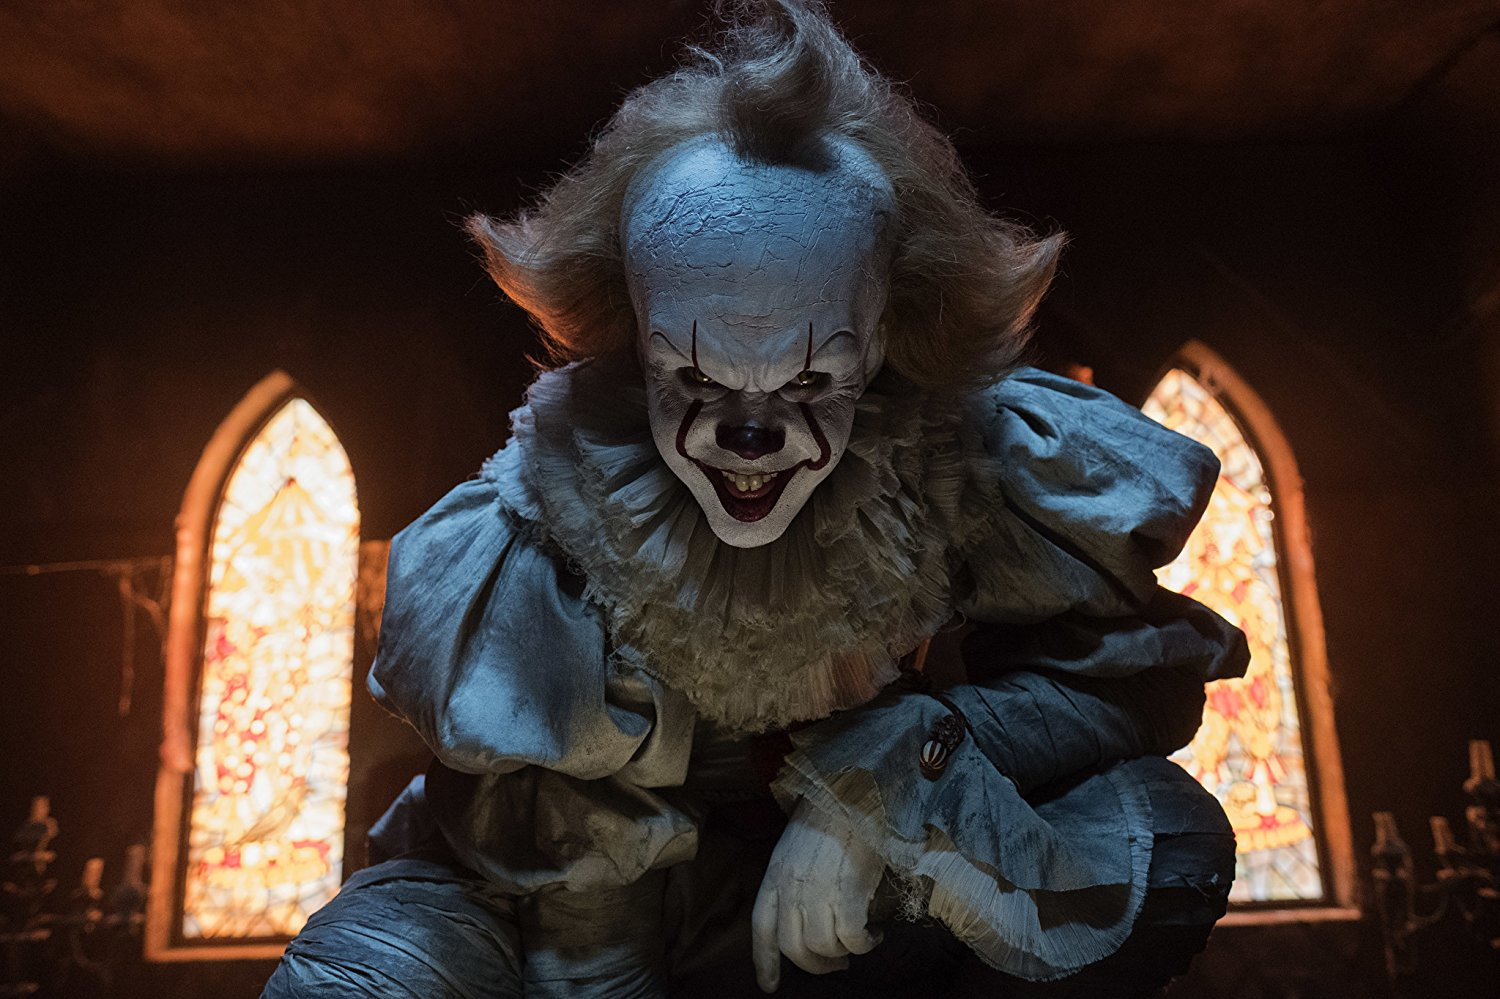 Is 'It' going to scare the sh*t out of you? class=